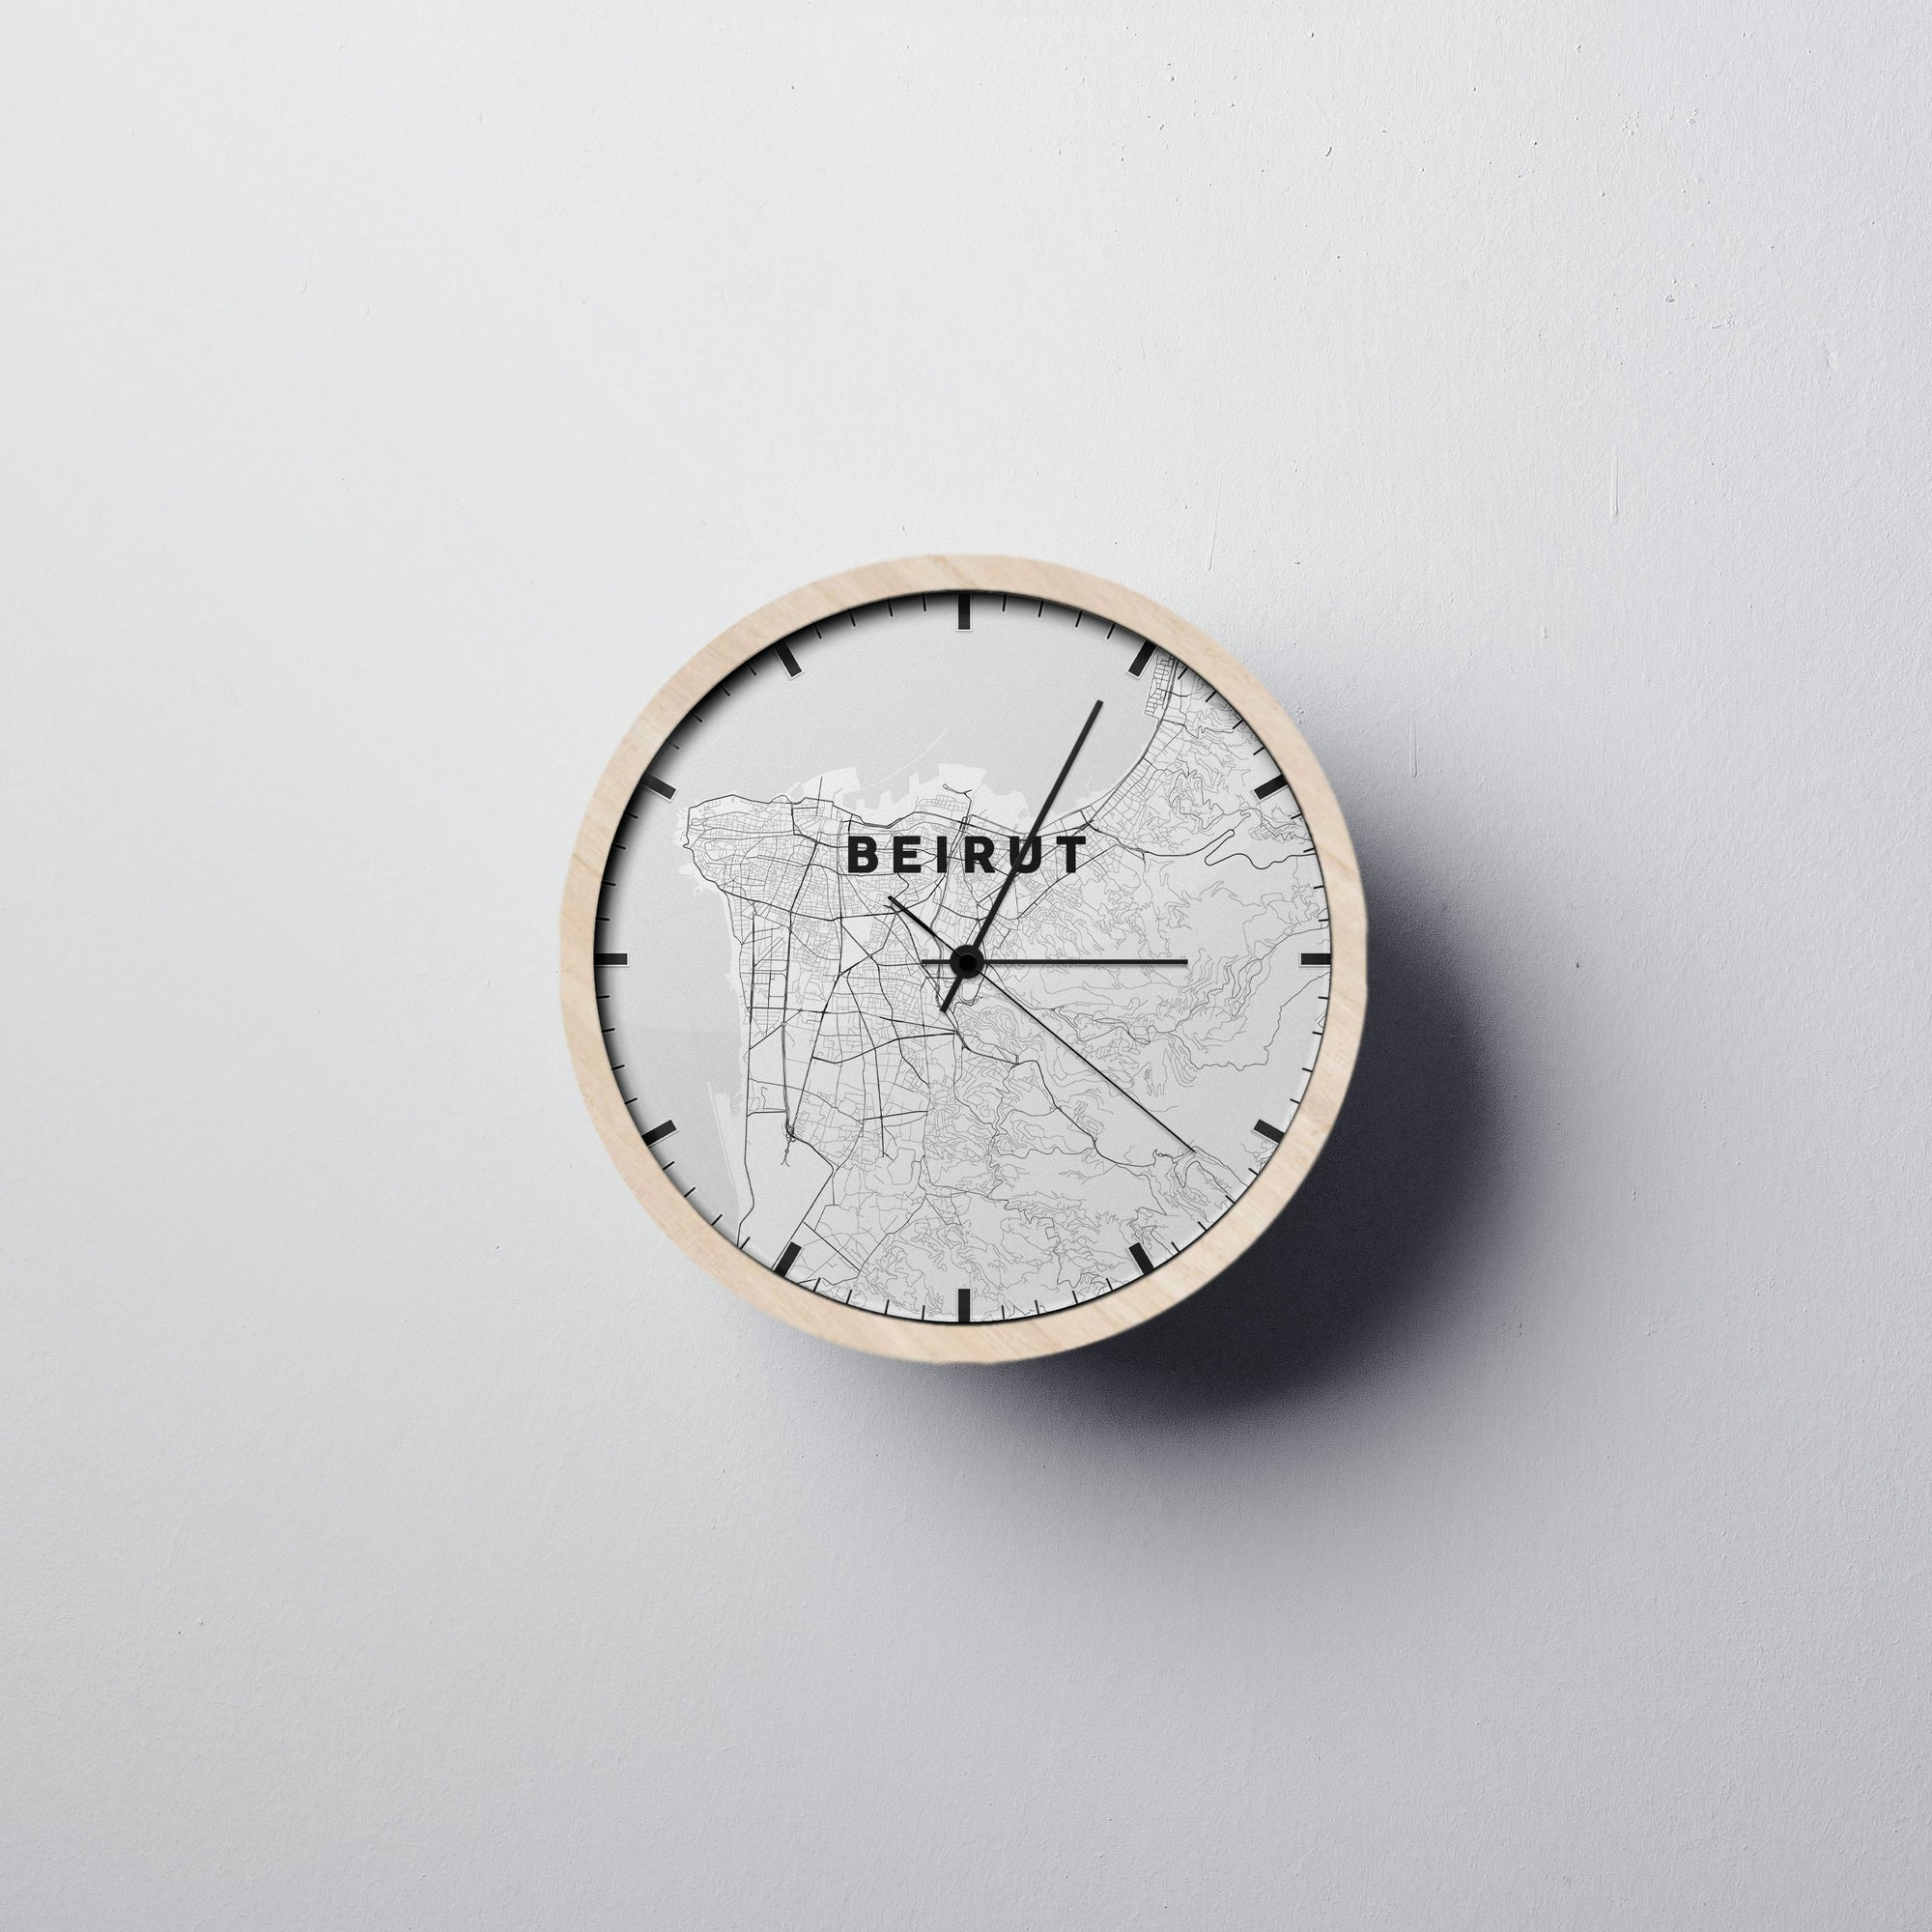 Beirut Wall Clock - Point Two Design